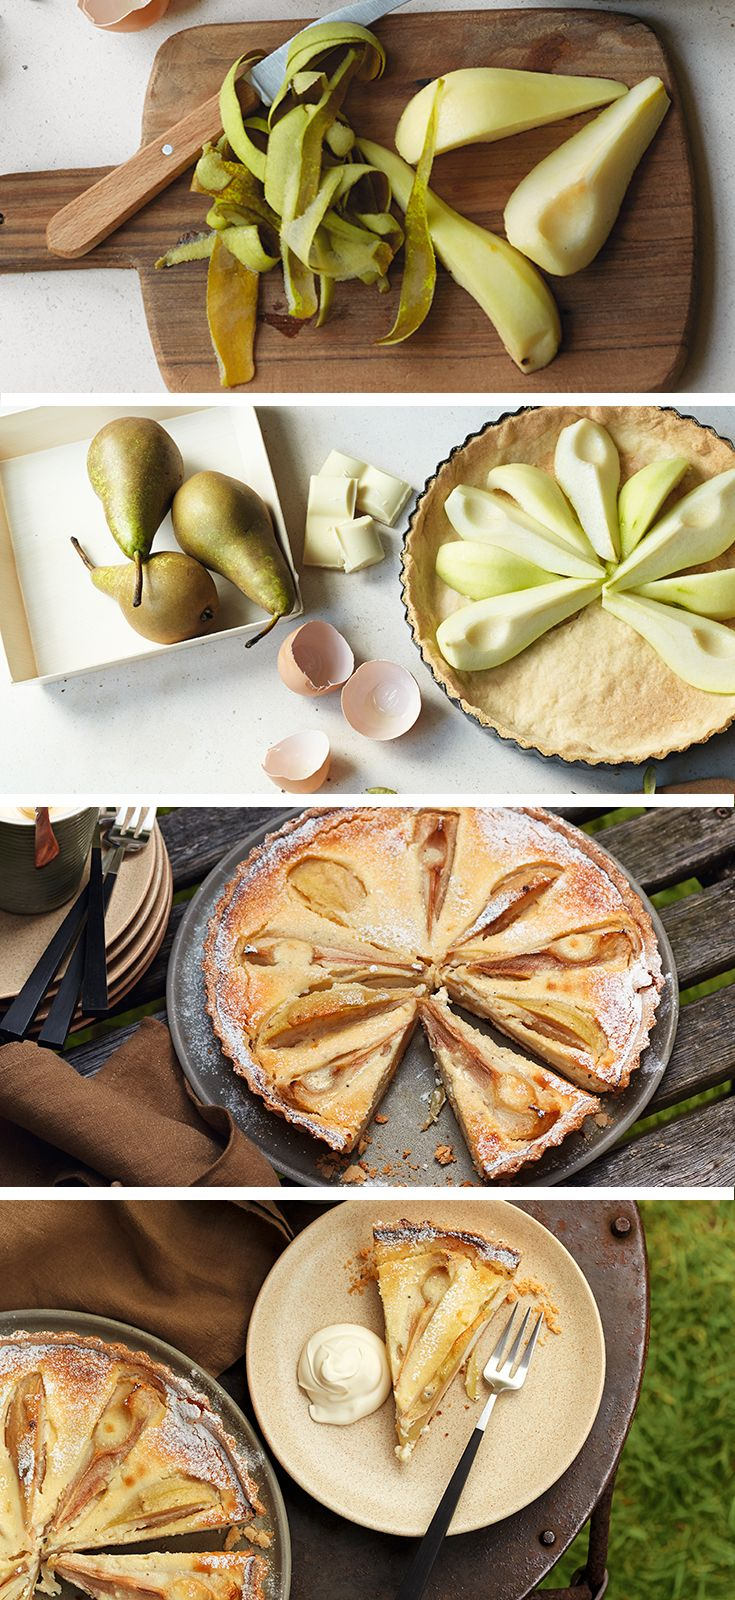 Pear and white chocolate and cardamom tart recipe – best served warm with vanilla ice cream